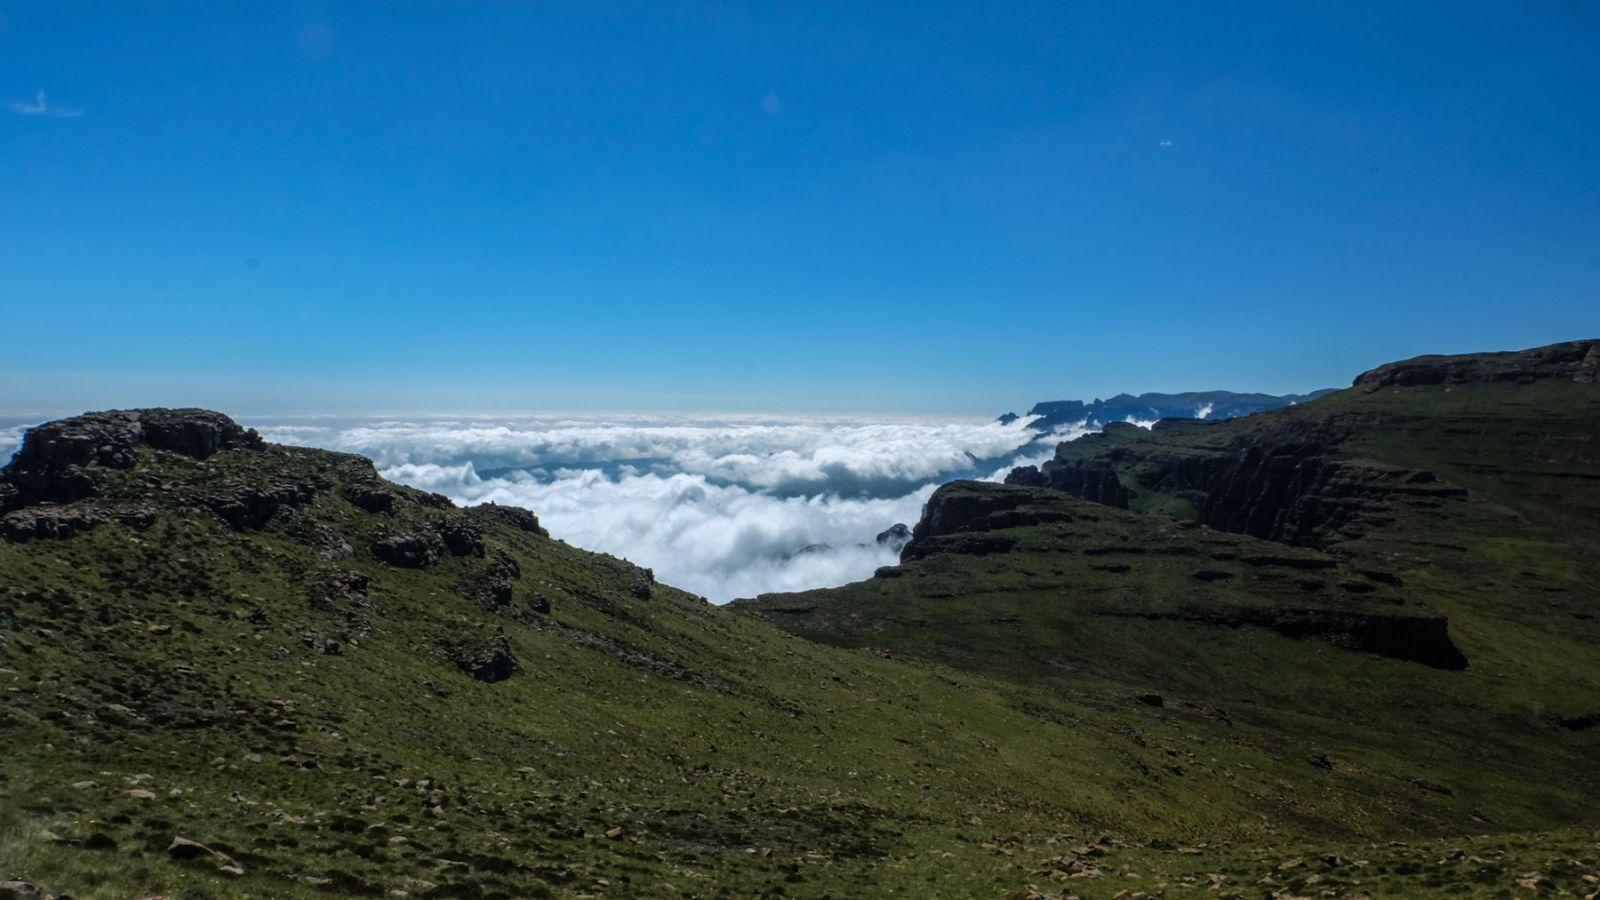 photo from a mountain plateau above the clouds with the drakensberg mountains in the background